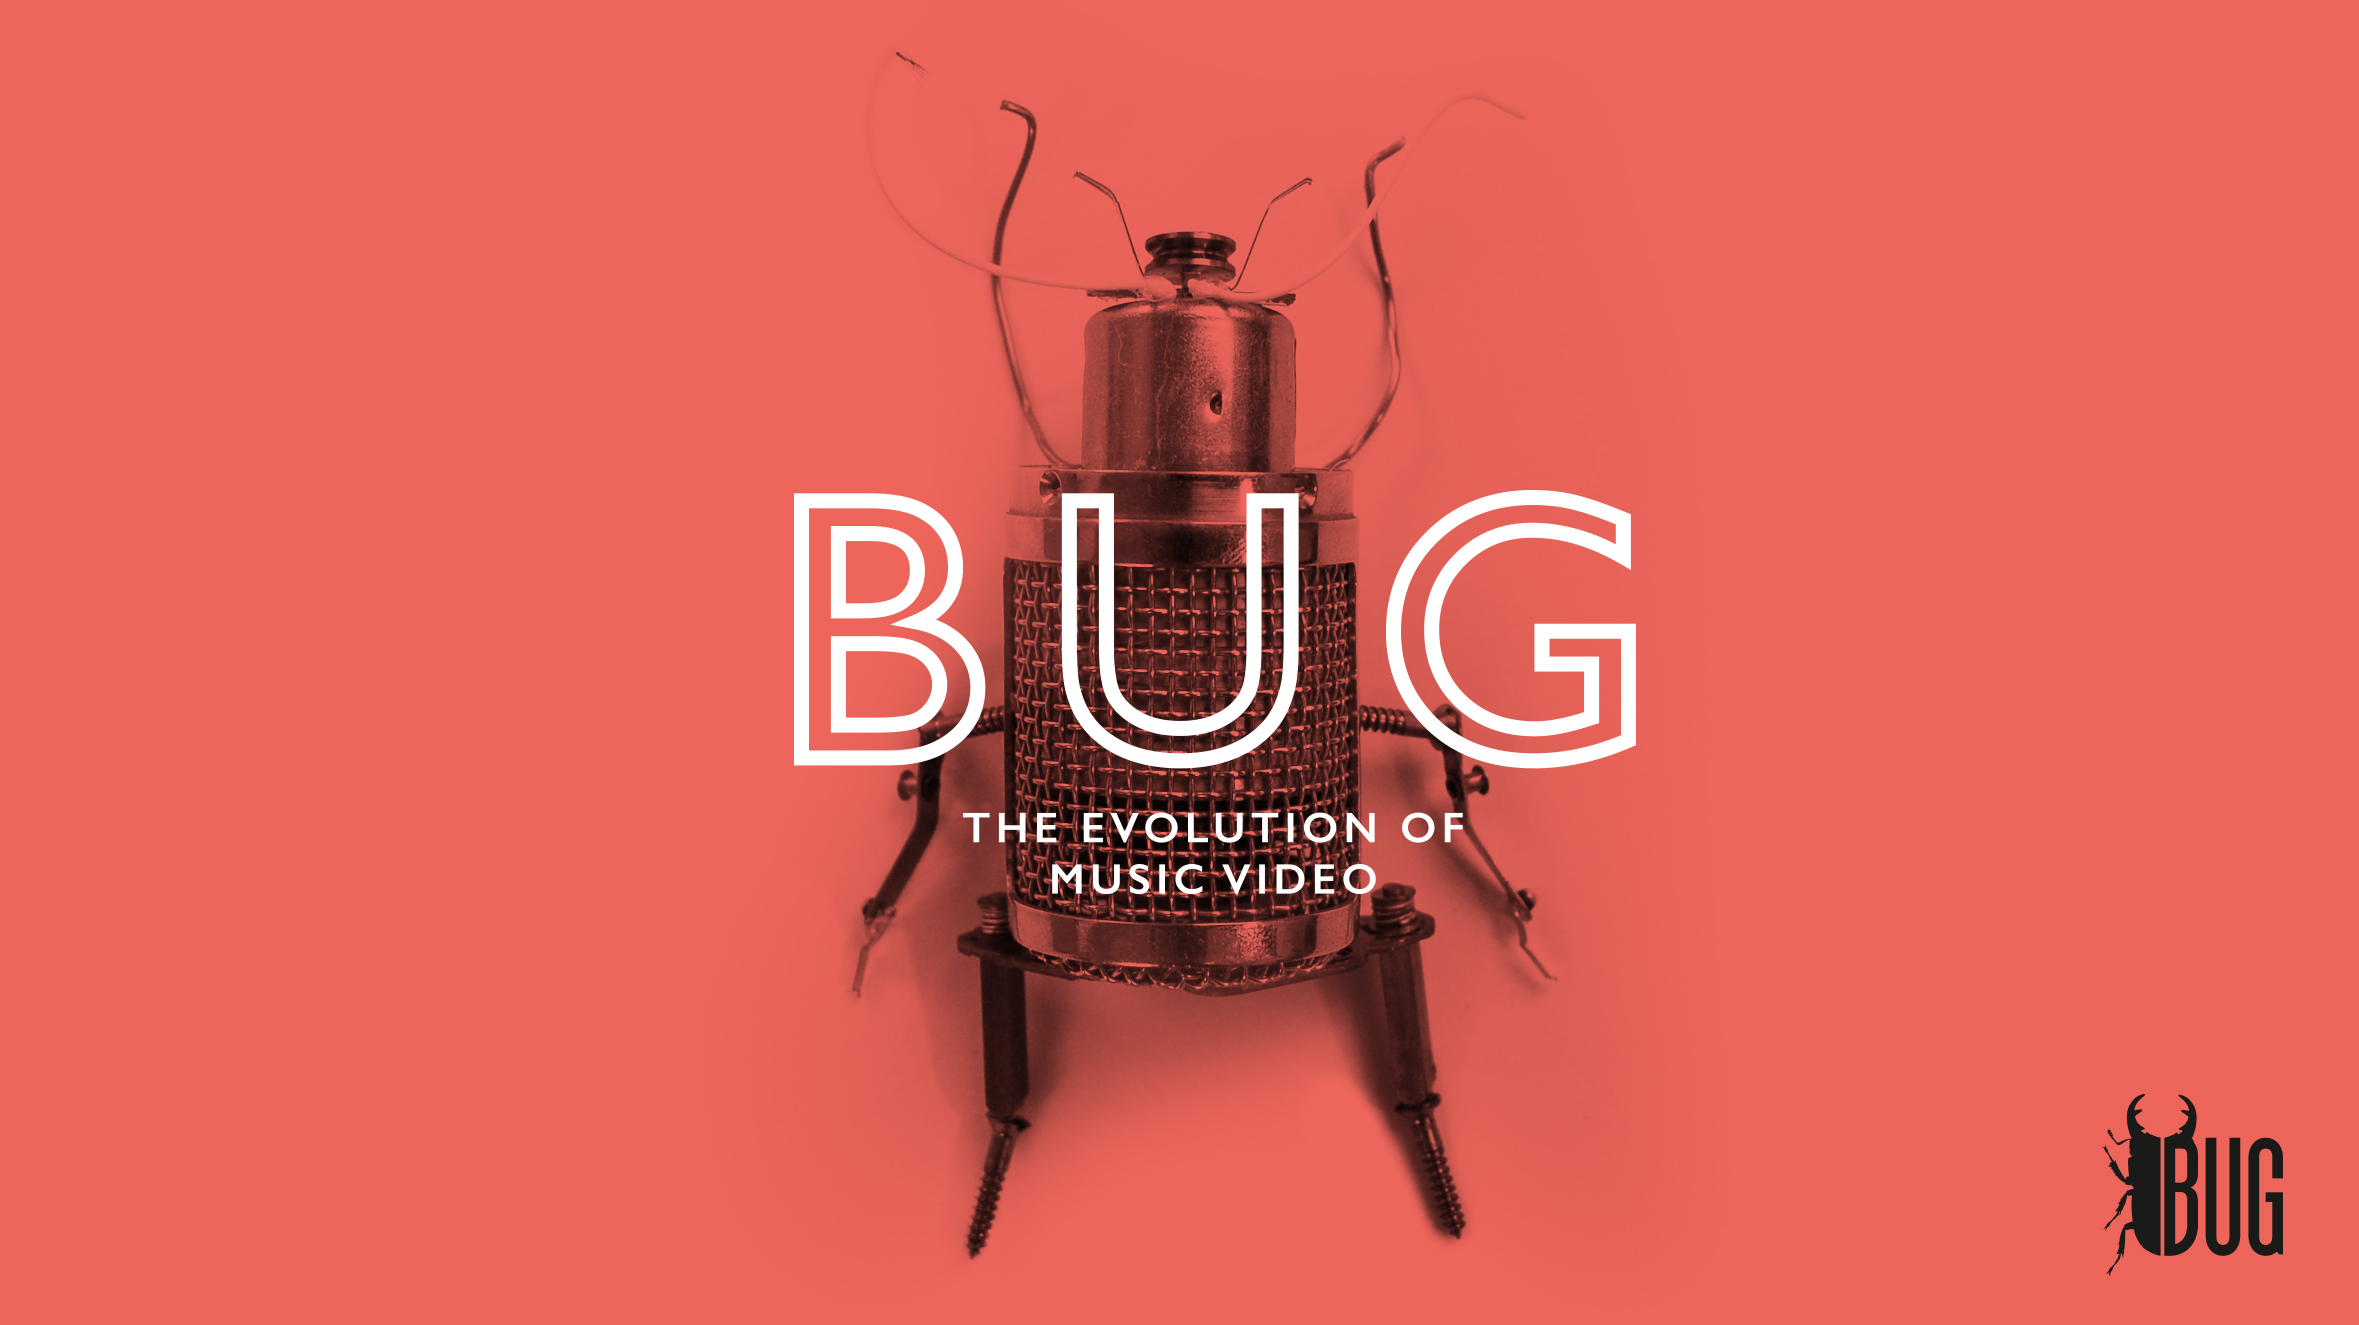 BUG 45 Music Videos Adam Buxton